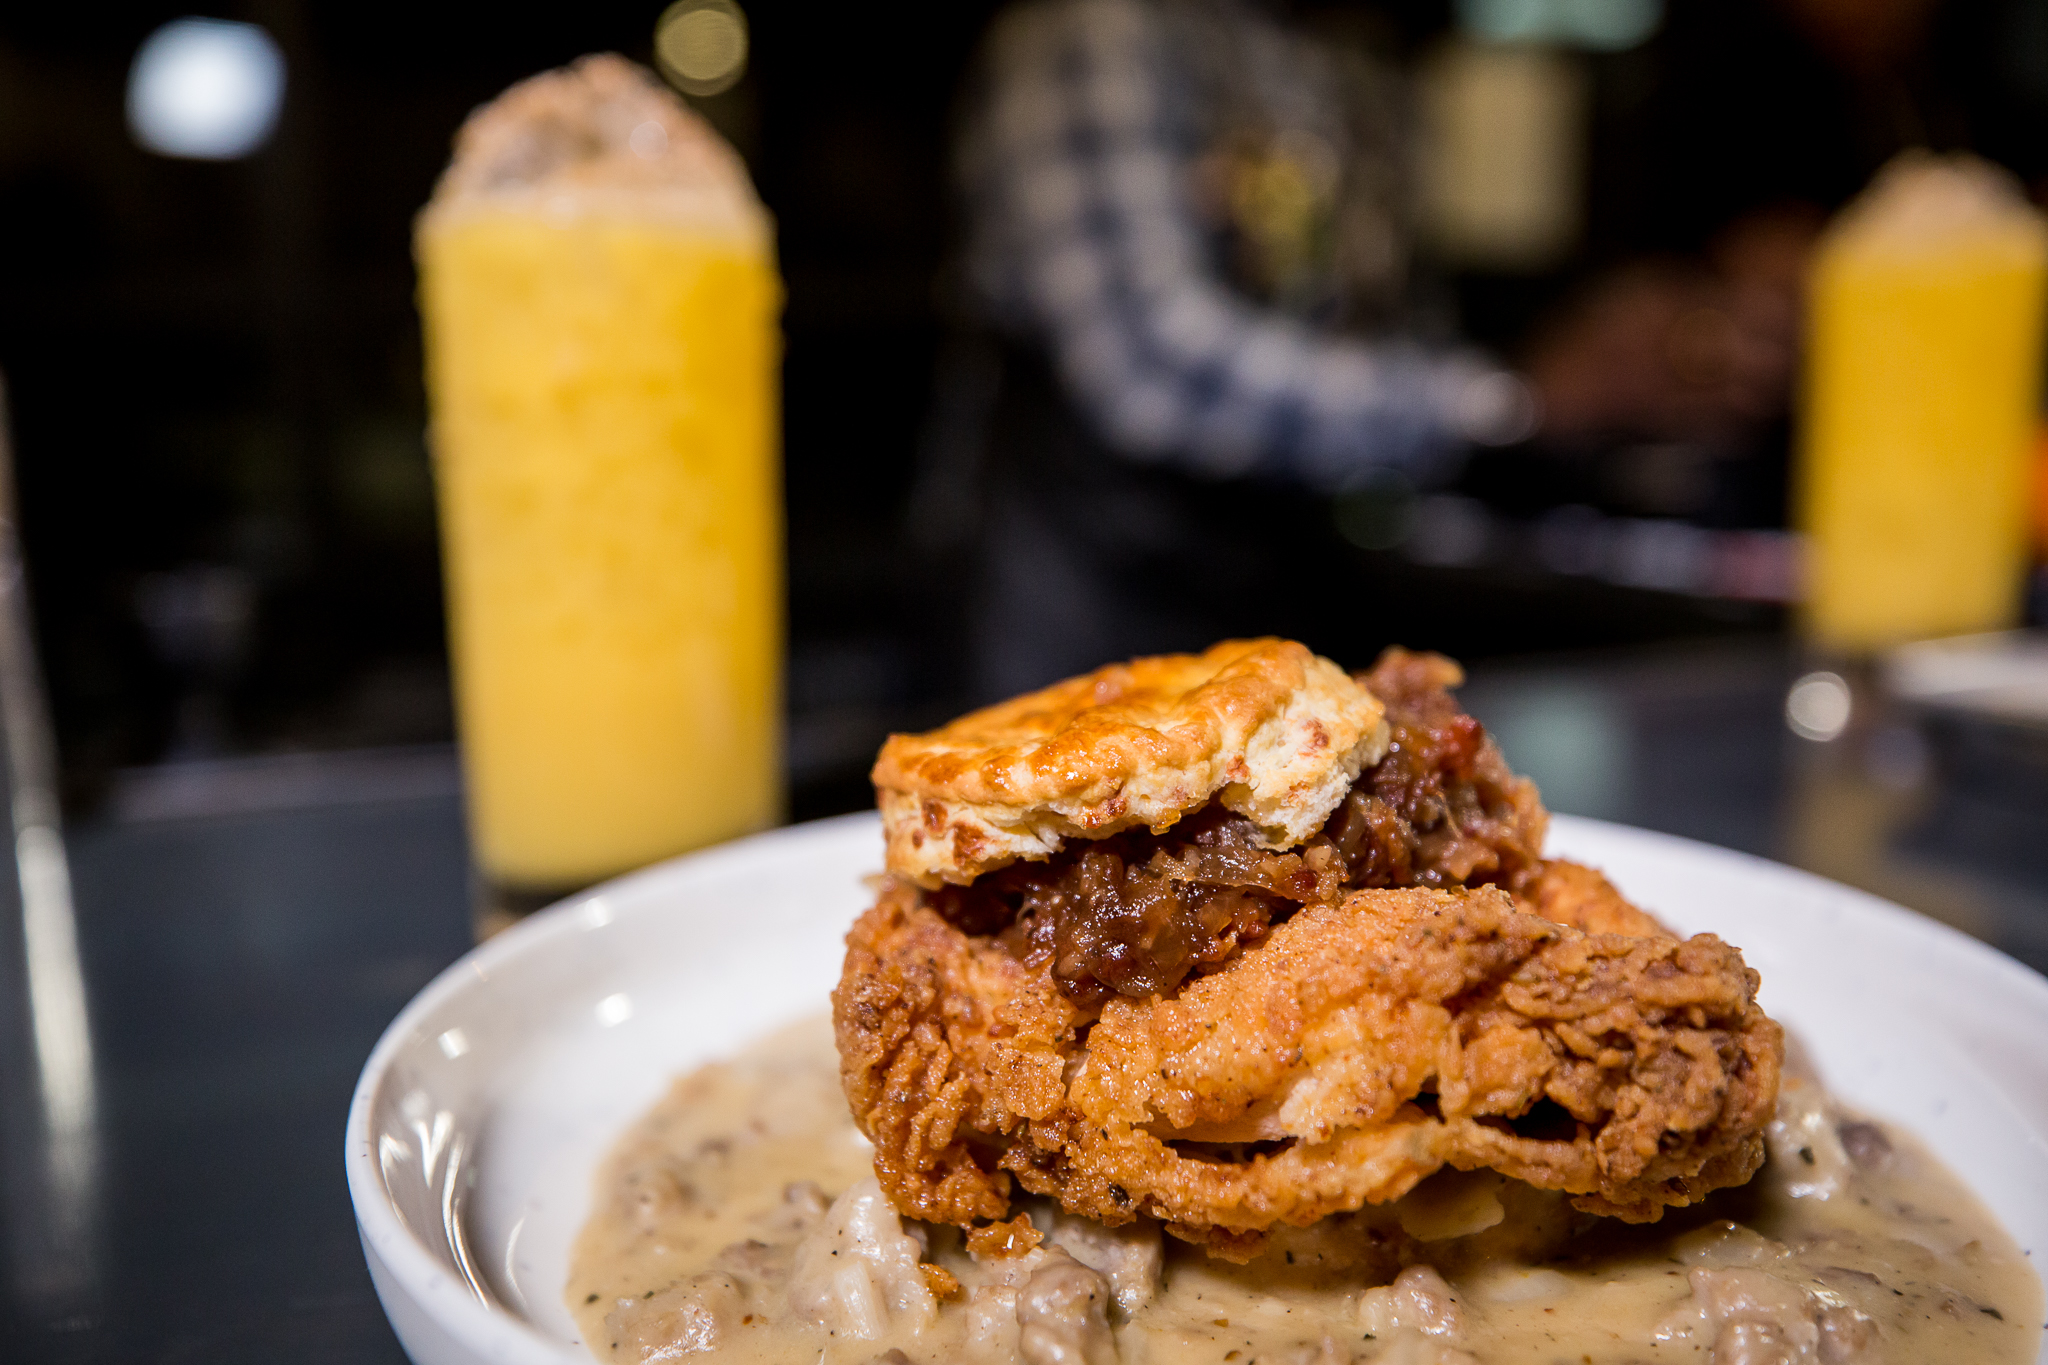 Shaw's New Fried Chicken Place Is Already Expanding to Navy Yard